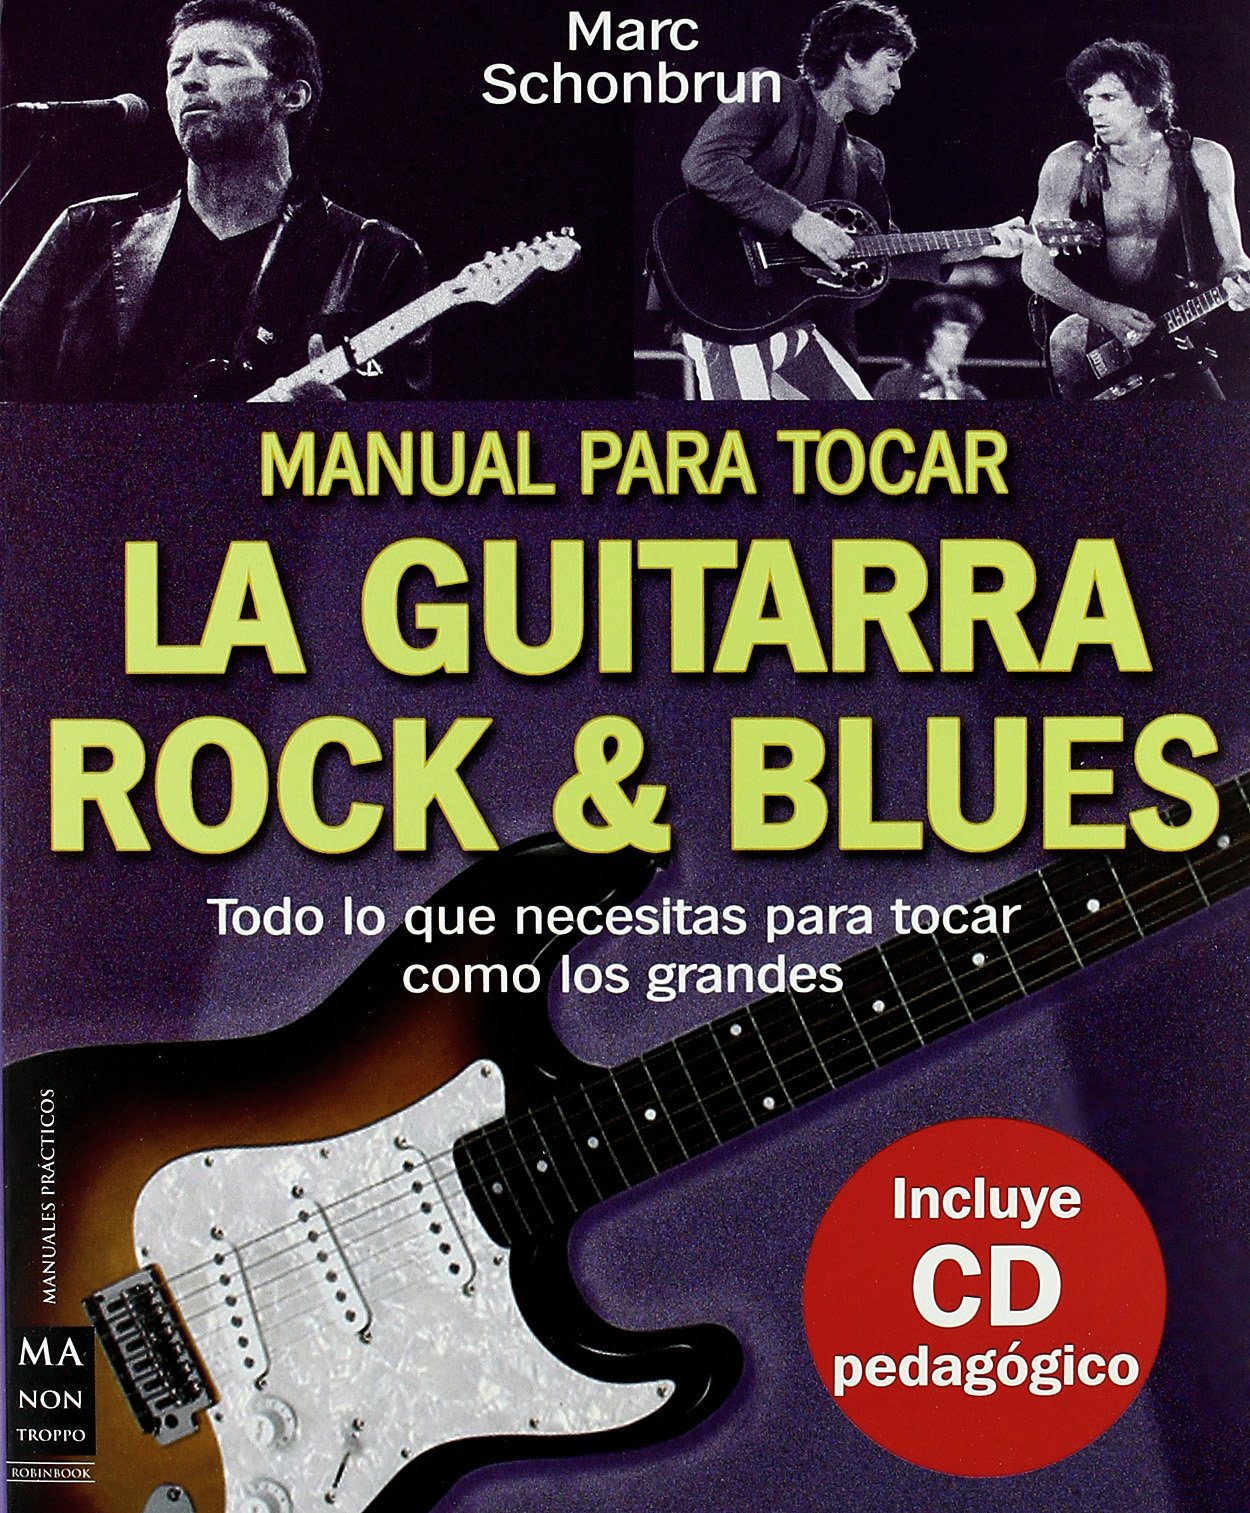 Manual para tocar la guitarra rock & blues, con CD Musica Ma Non ...